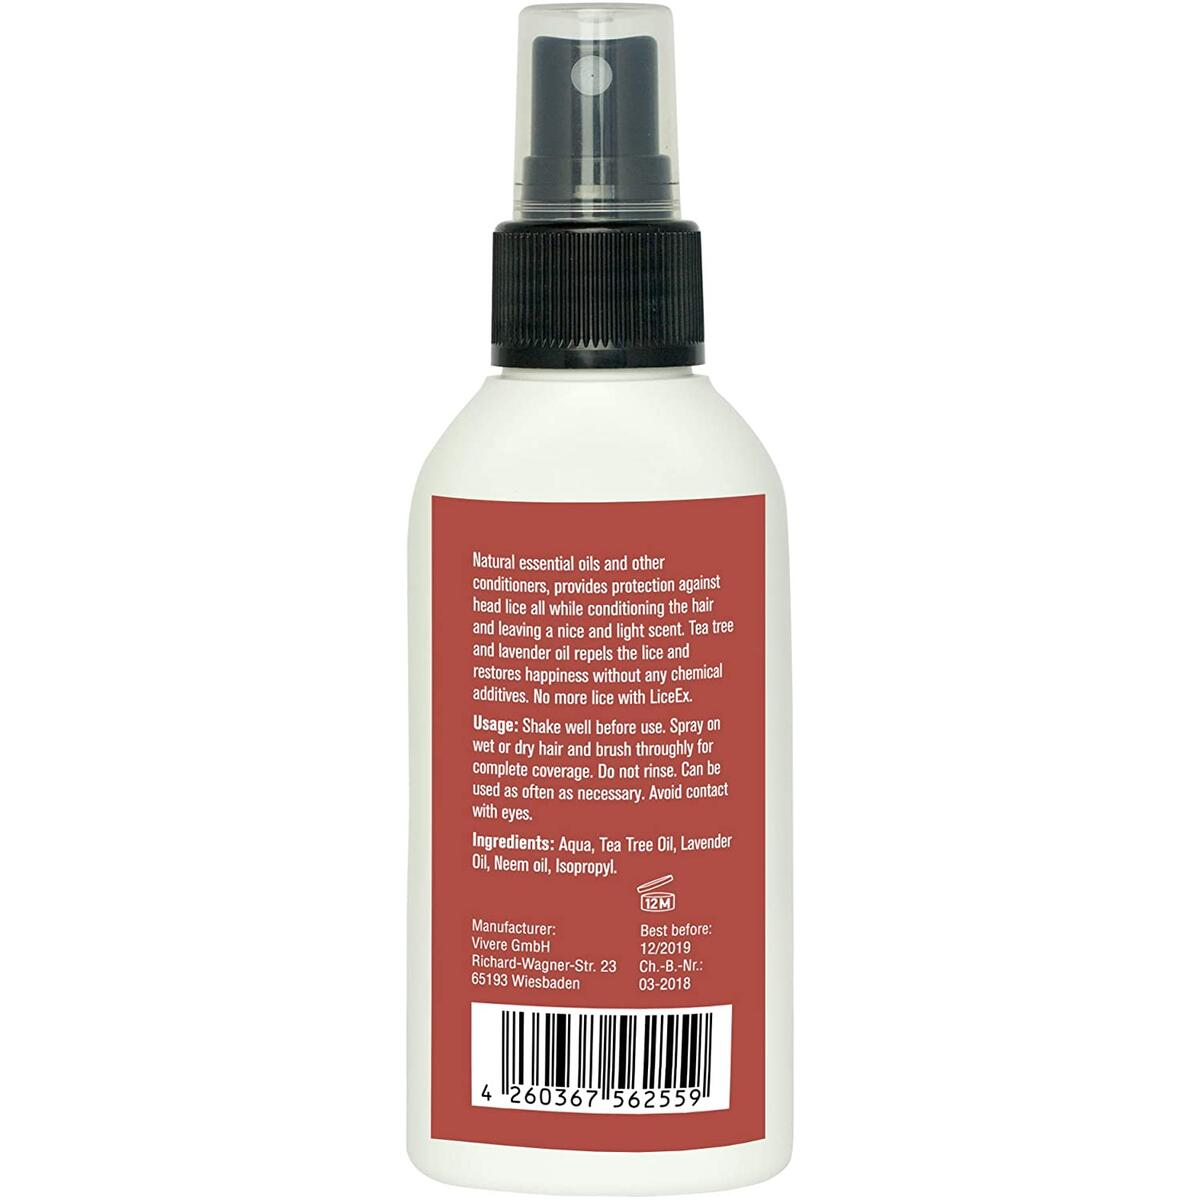 Lice Treatment Spray - Lice Spray for Hair | for Kids and Adults | Natural Lice Spray for Protection Against Head Lice - Alternative to Head Lice Shampoo and Lice Comb - 3.38 Fl Oz